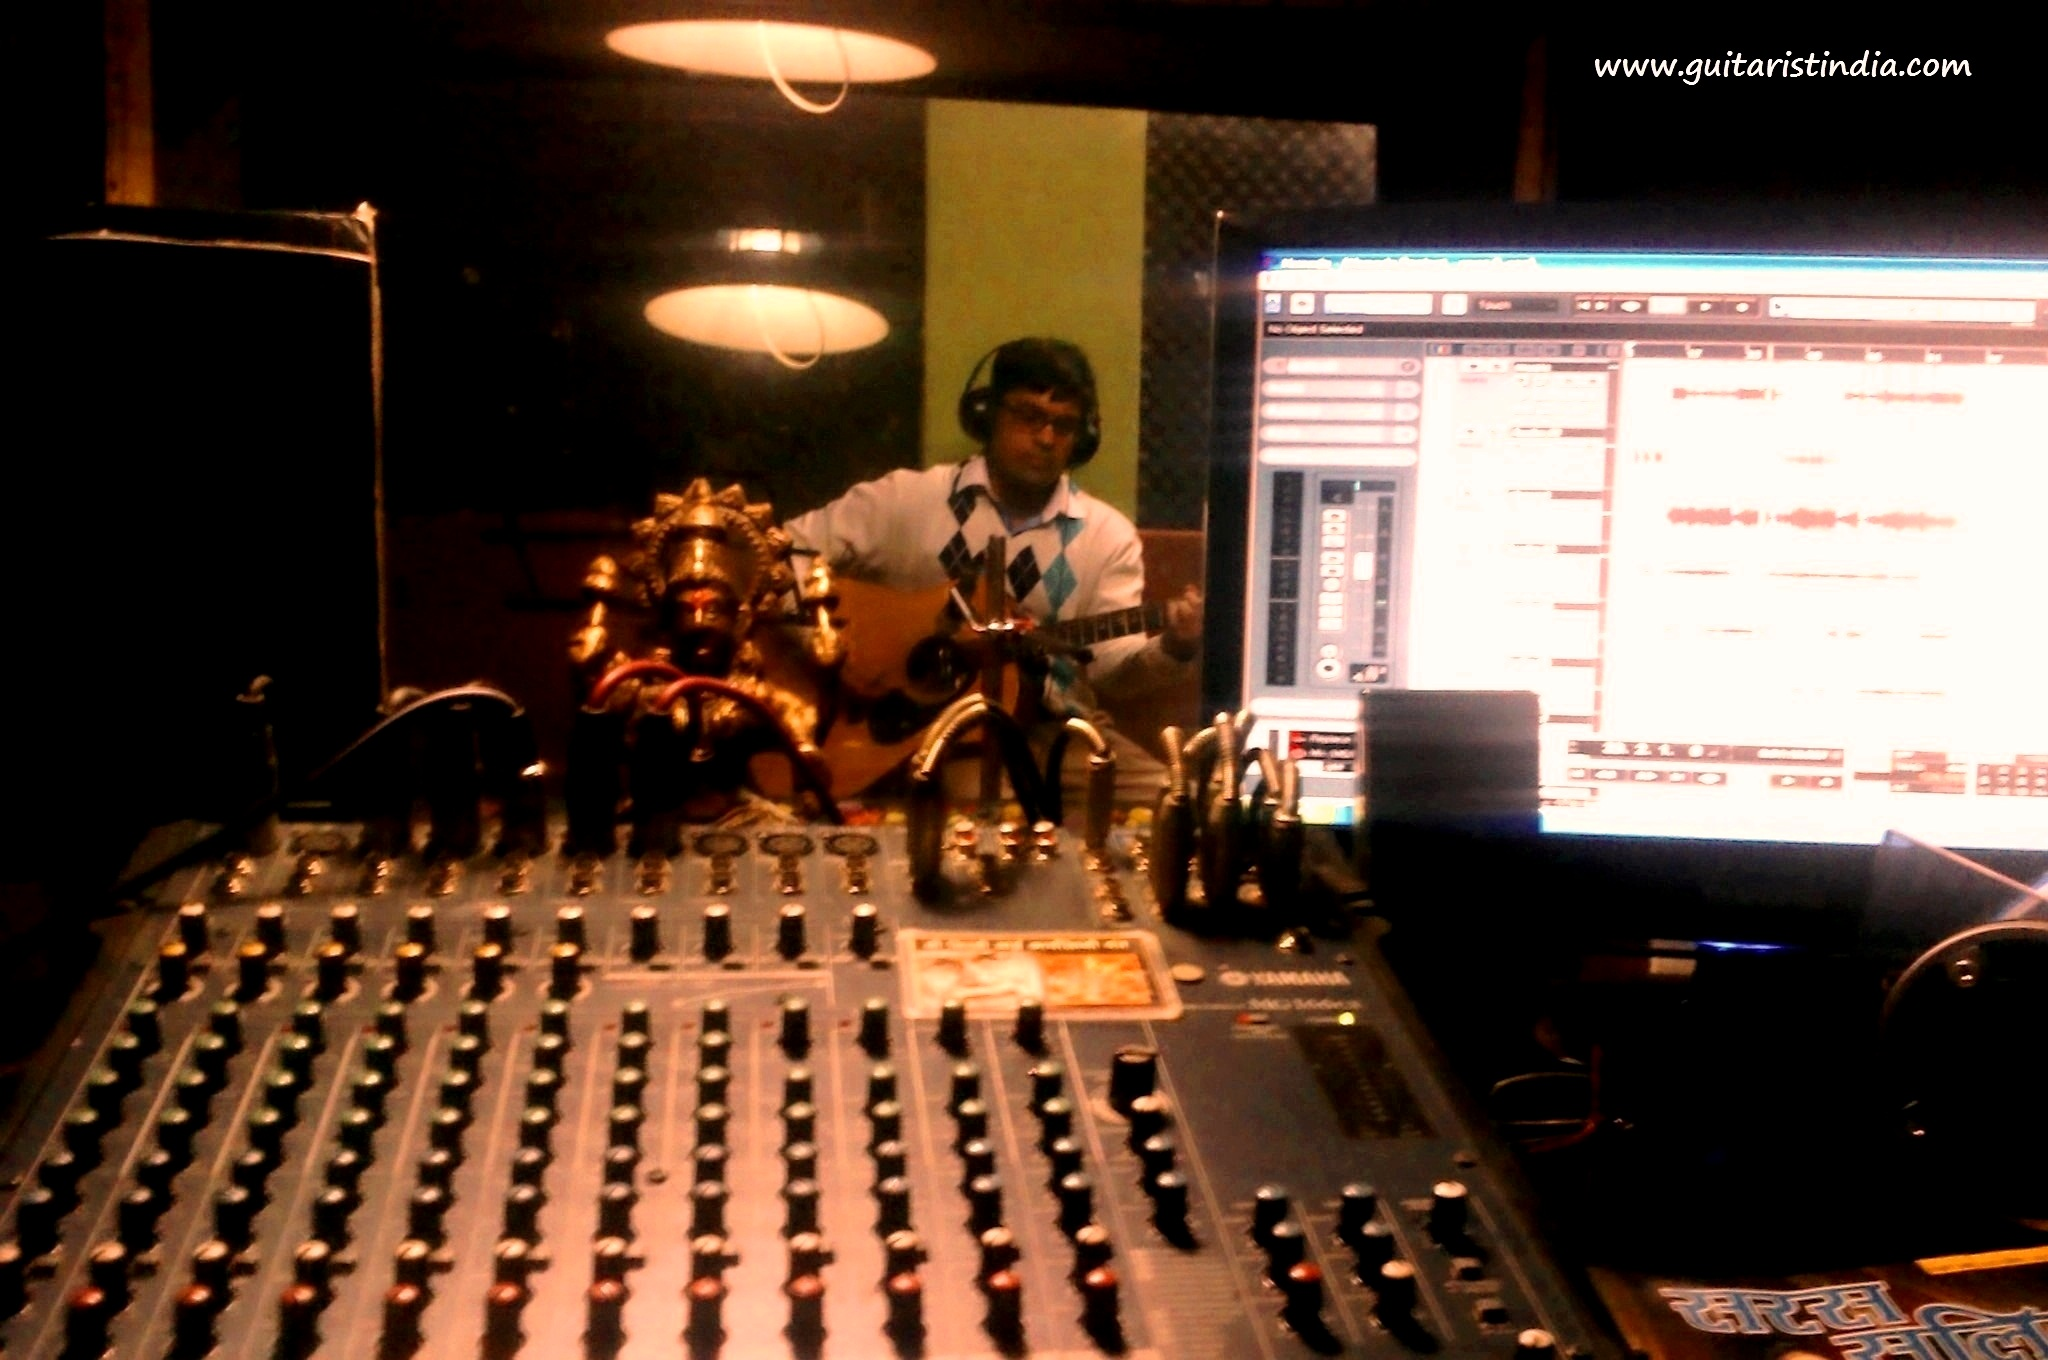 Had a hectic recording session today :)